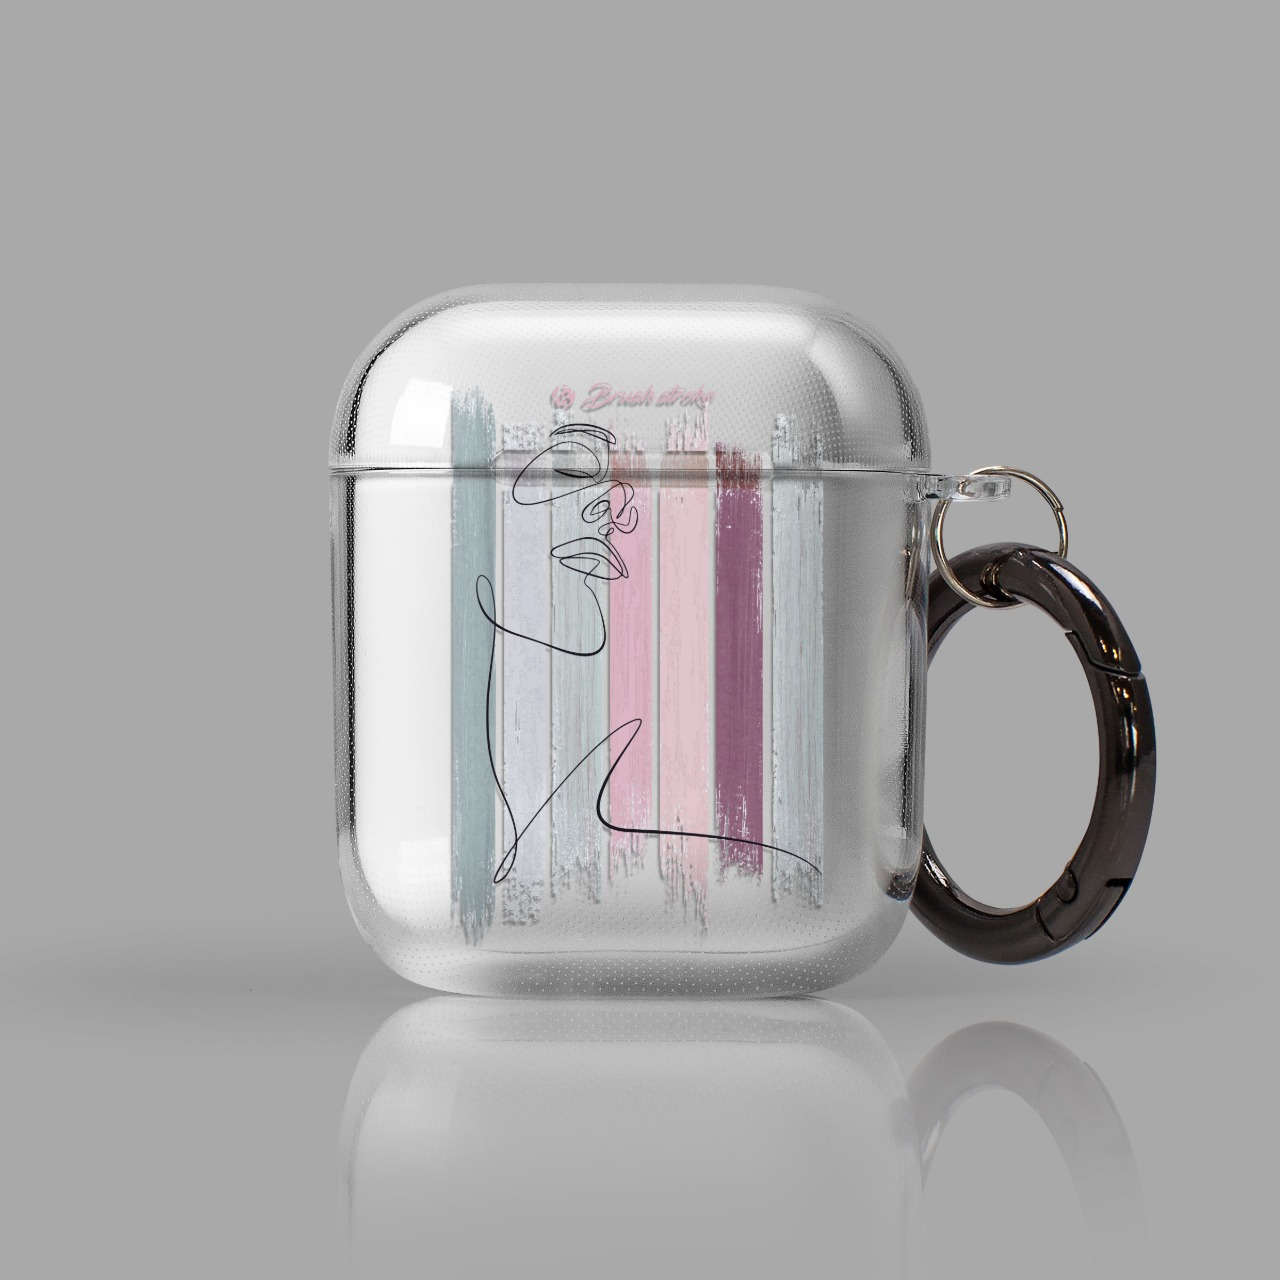 [Airpods cases] Brushstrokes No.08